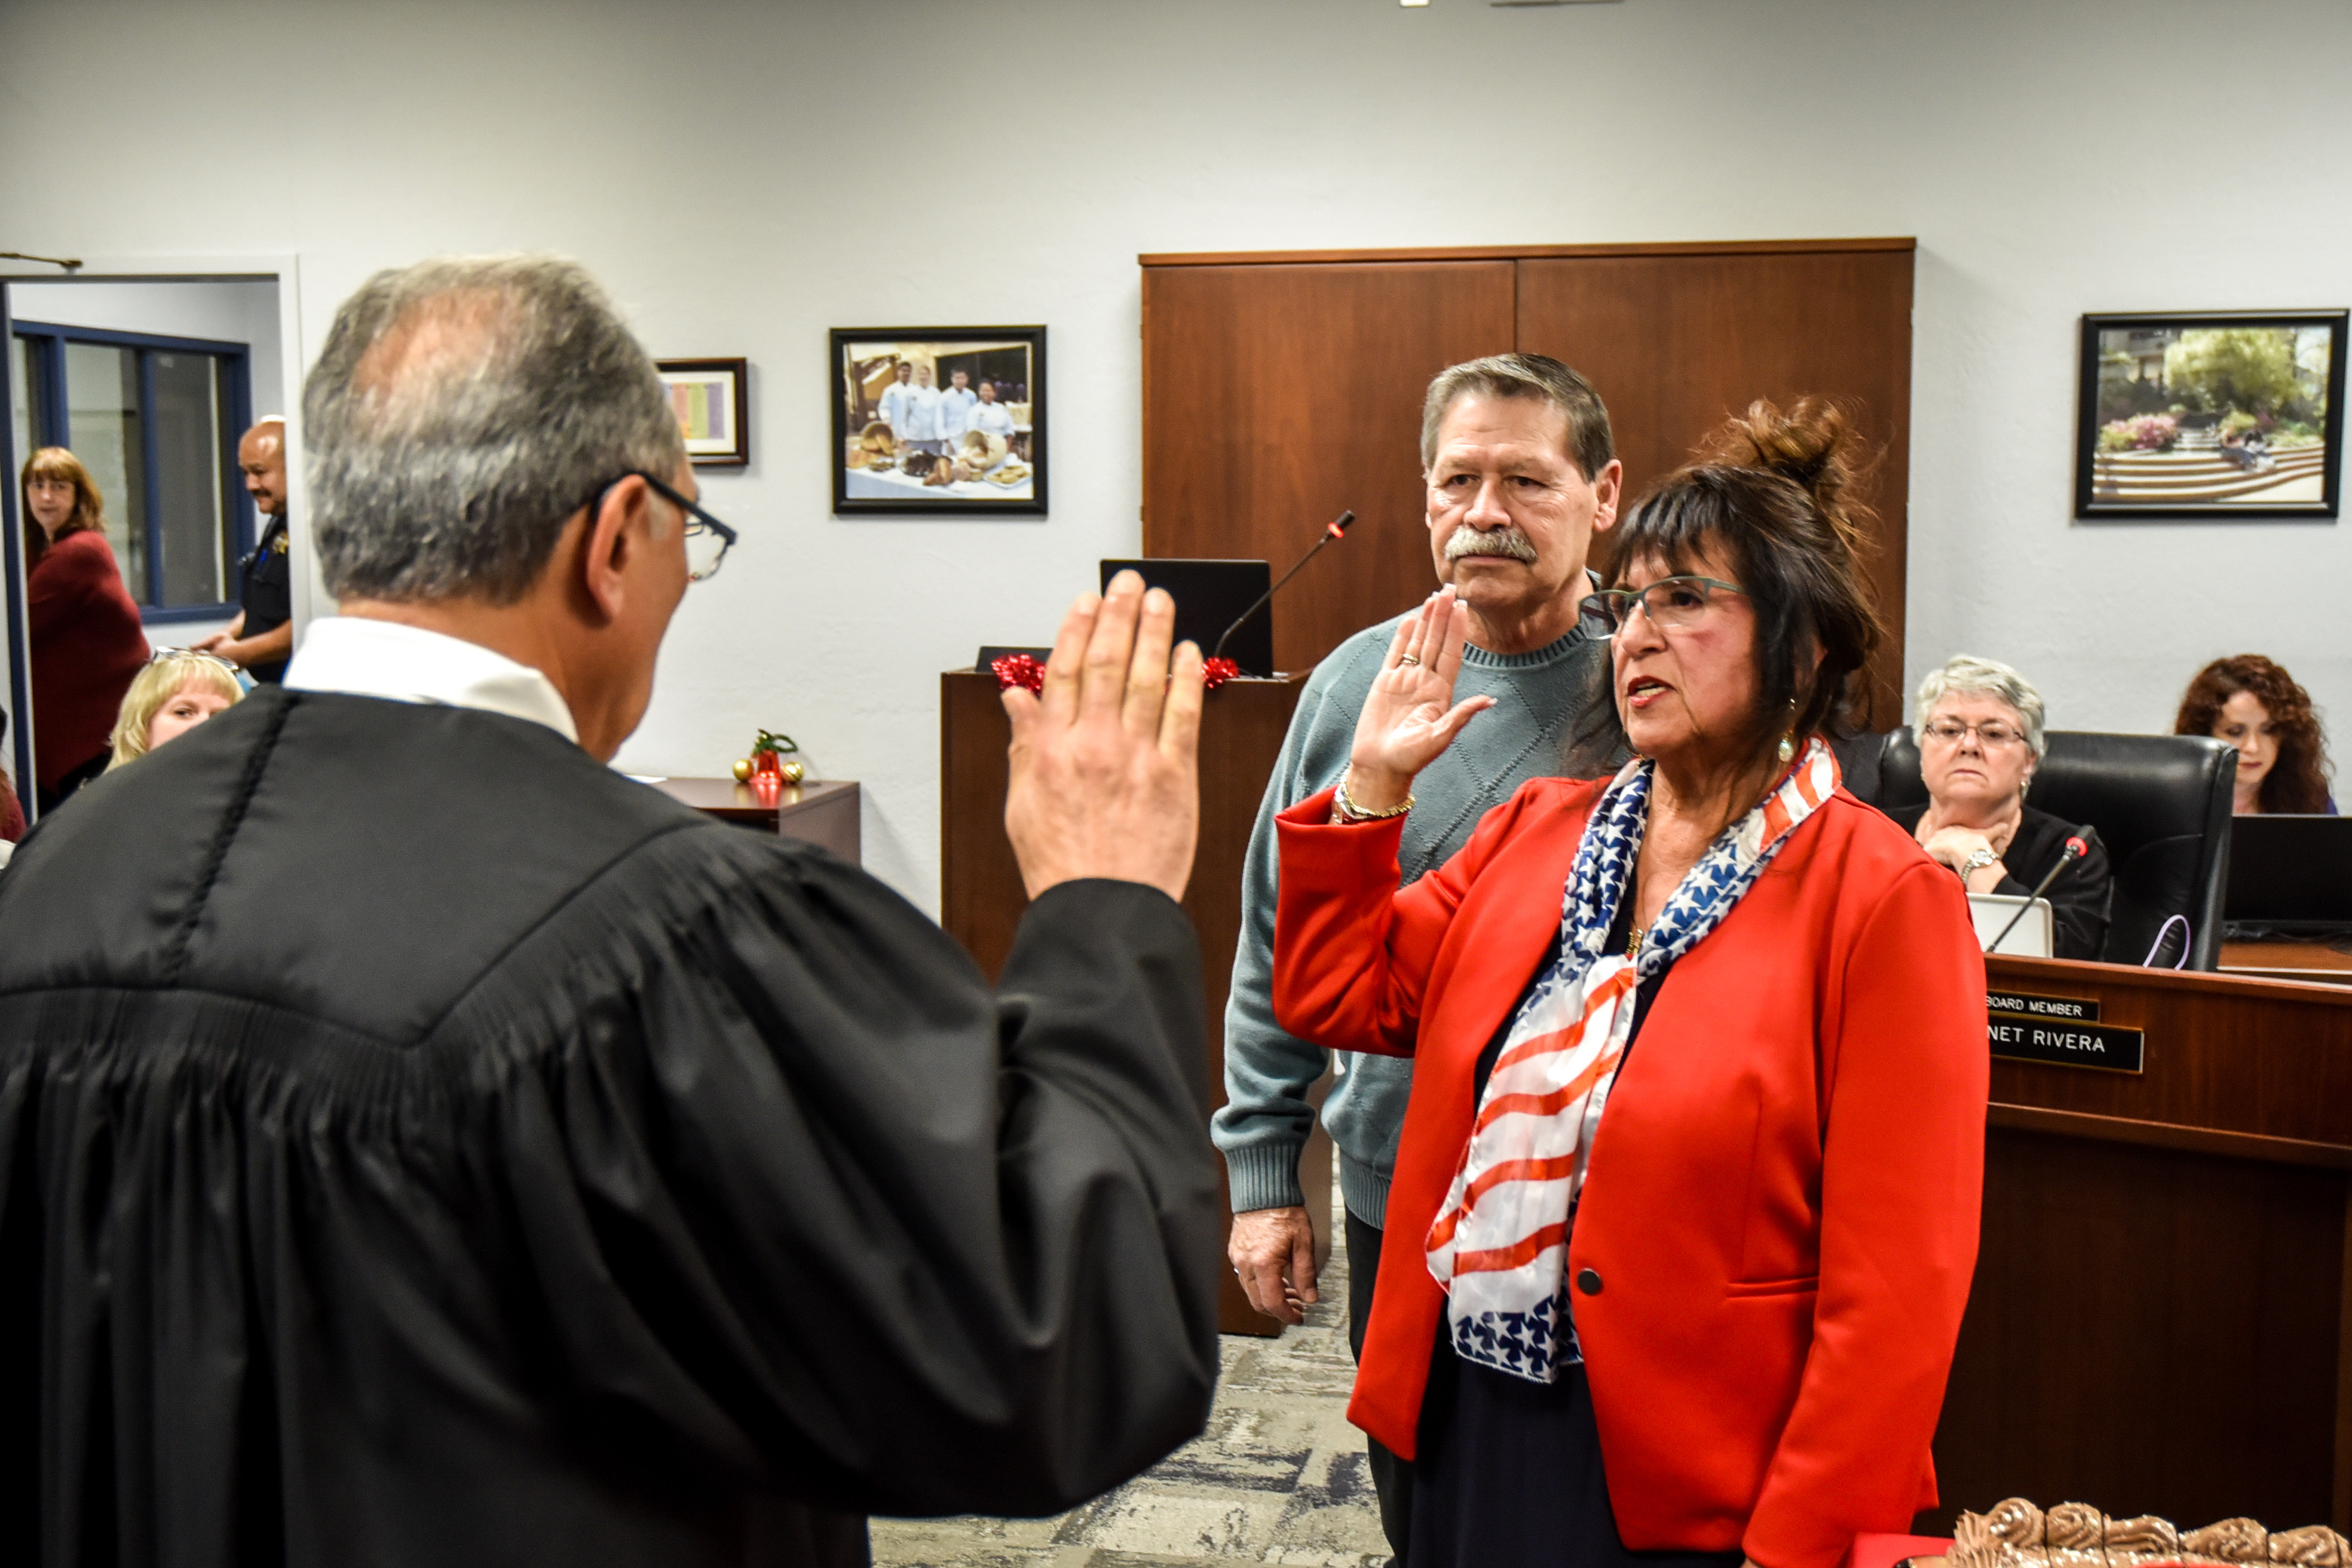 Returning San Joaquin Delta College Trustee Janet Rivera is sworn in while her husband, Rupert, watches.